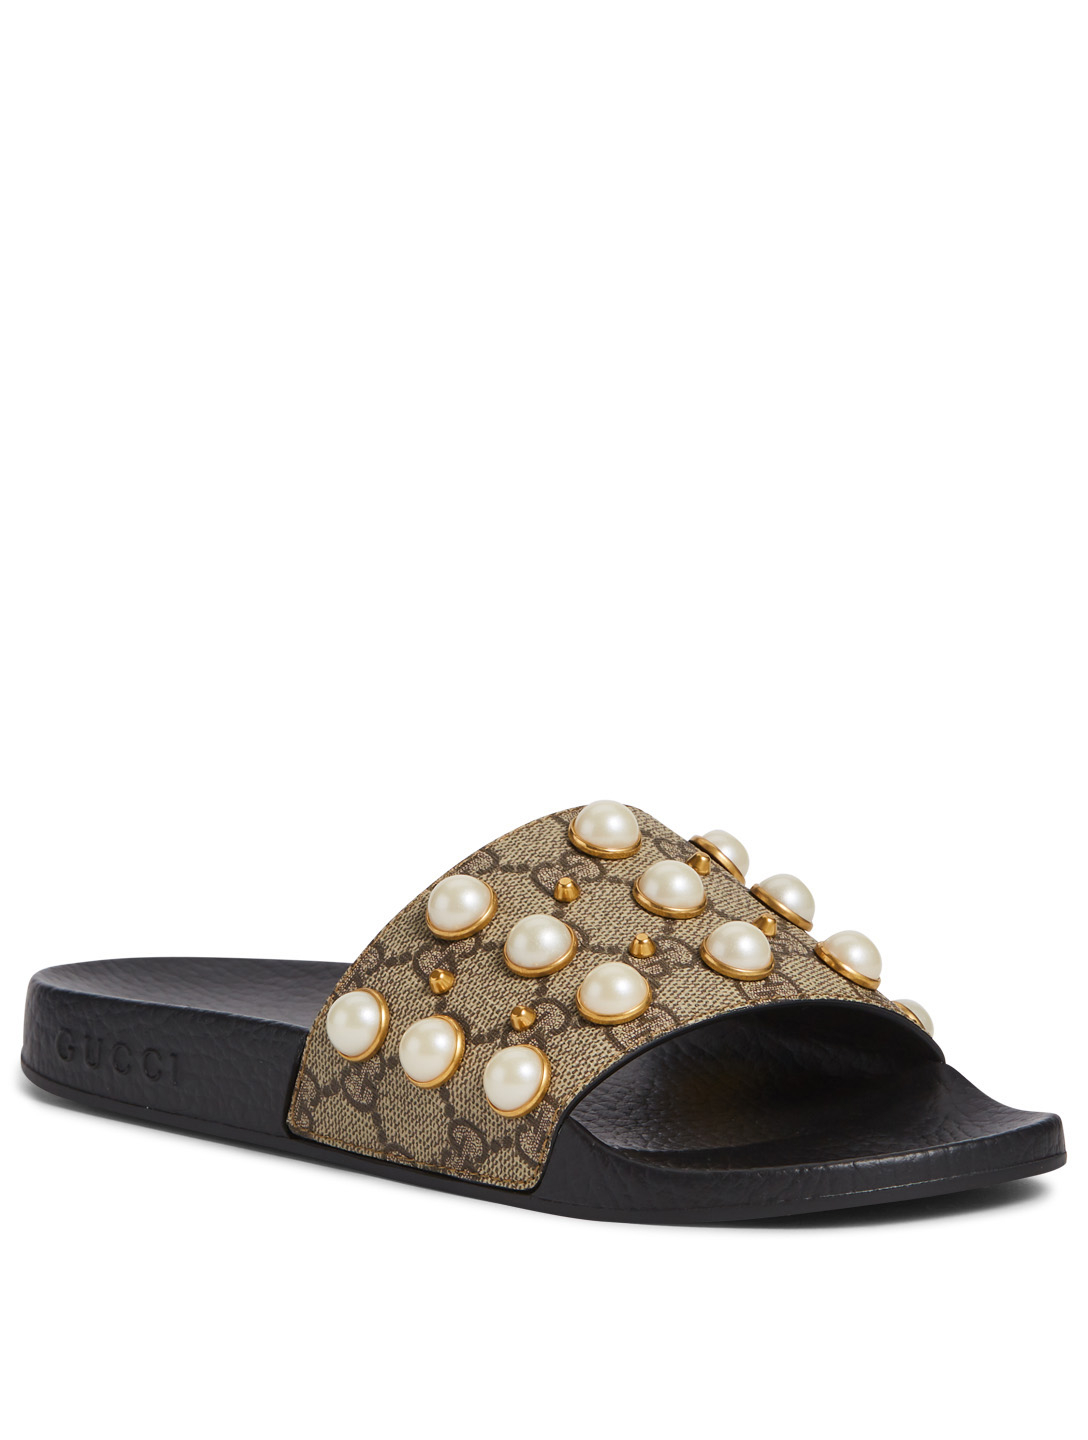 ed57178d3cb ... GUCCI GG Supreme Pool Slides With Pearls Womens Neutral ...